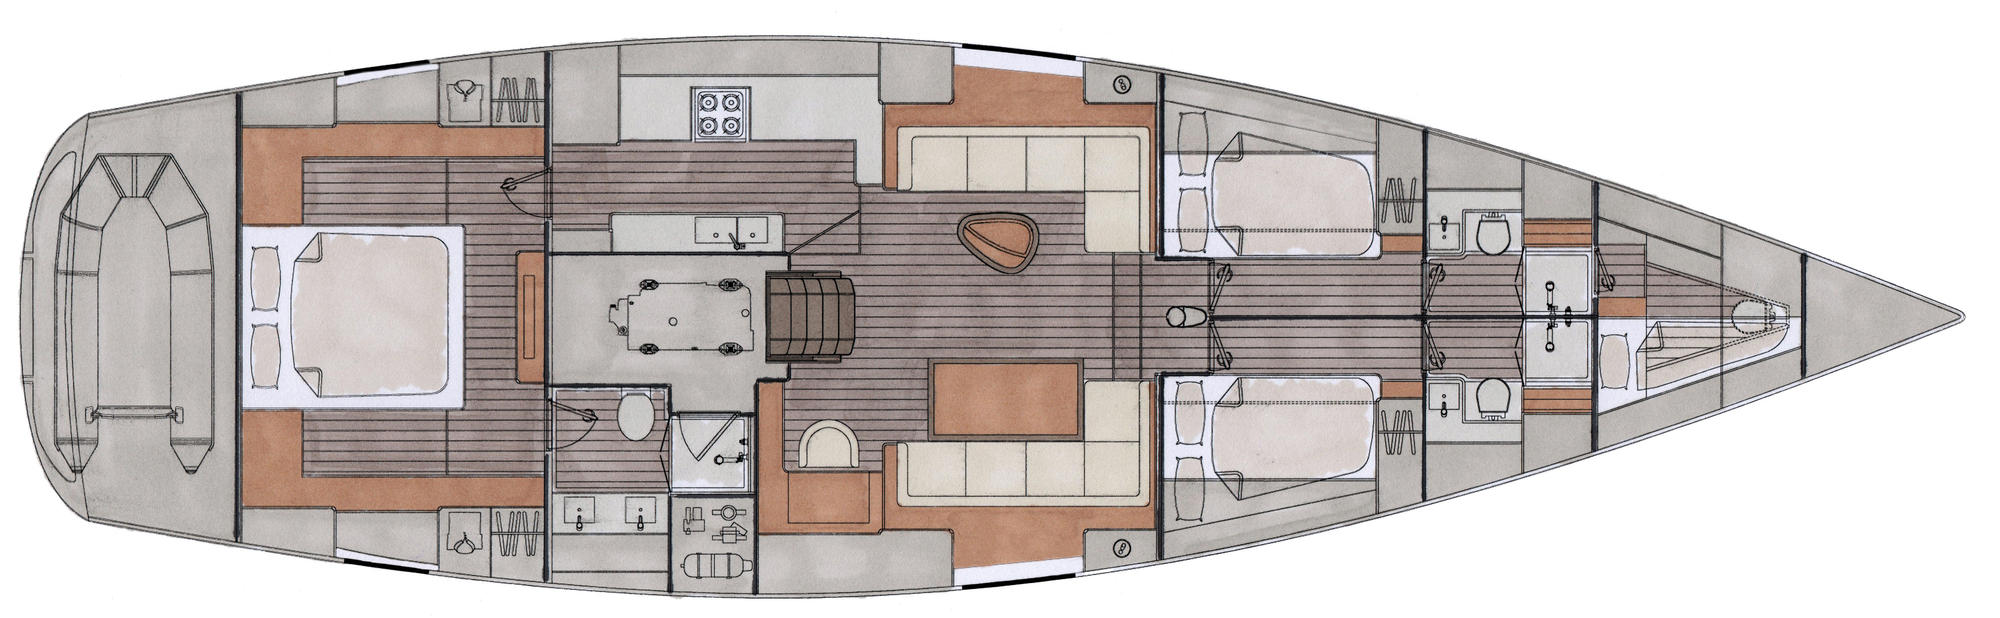 Conyplex Contest 62 CS - contest_62cs_interior_layout_a.jpg